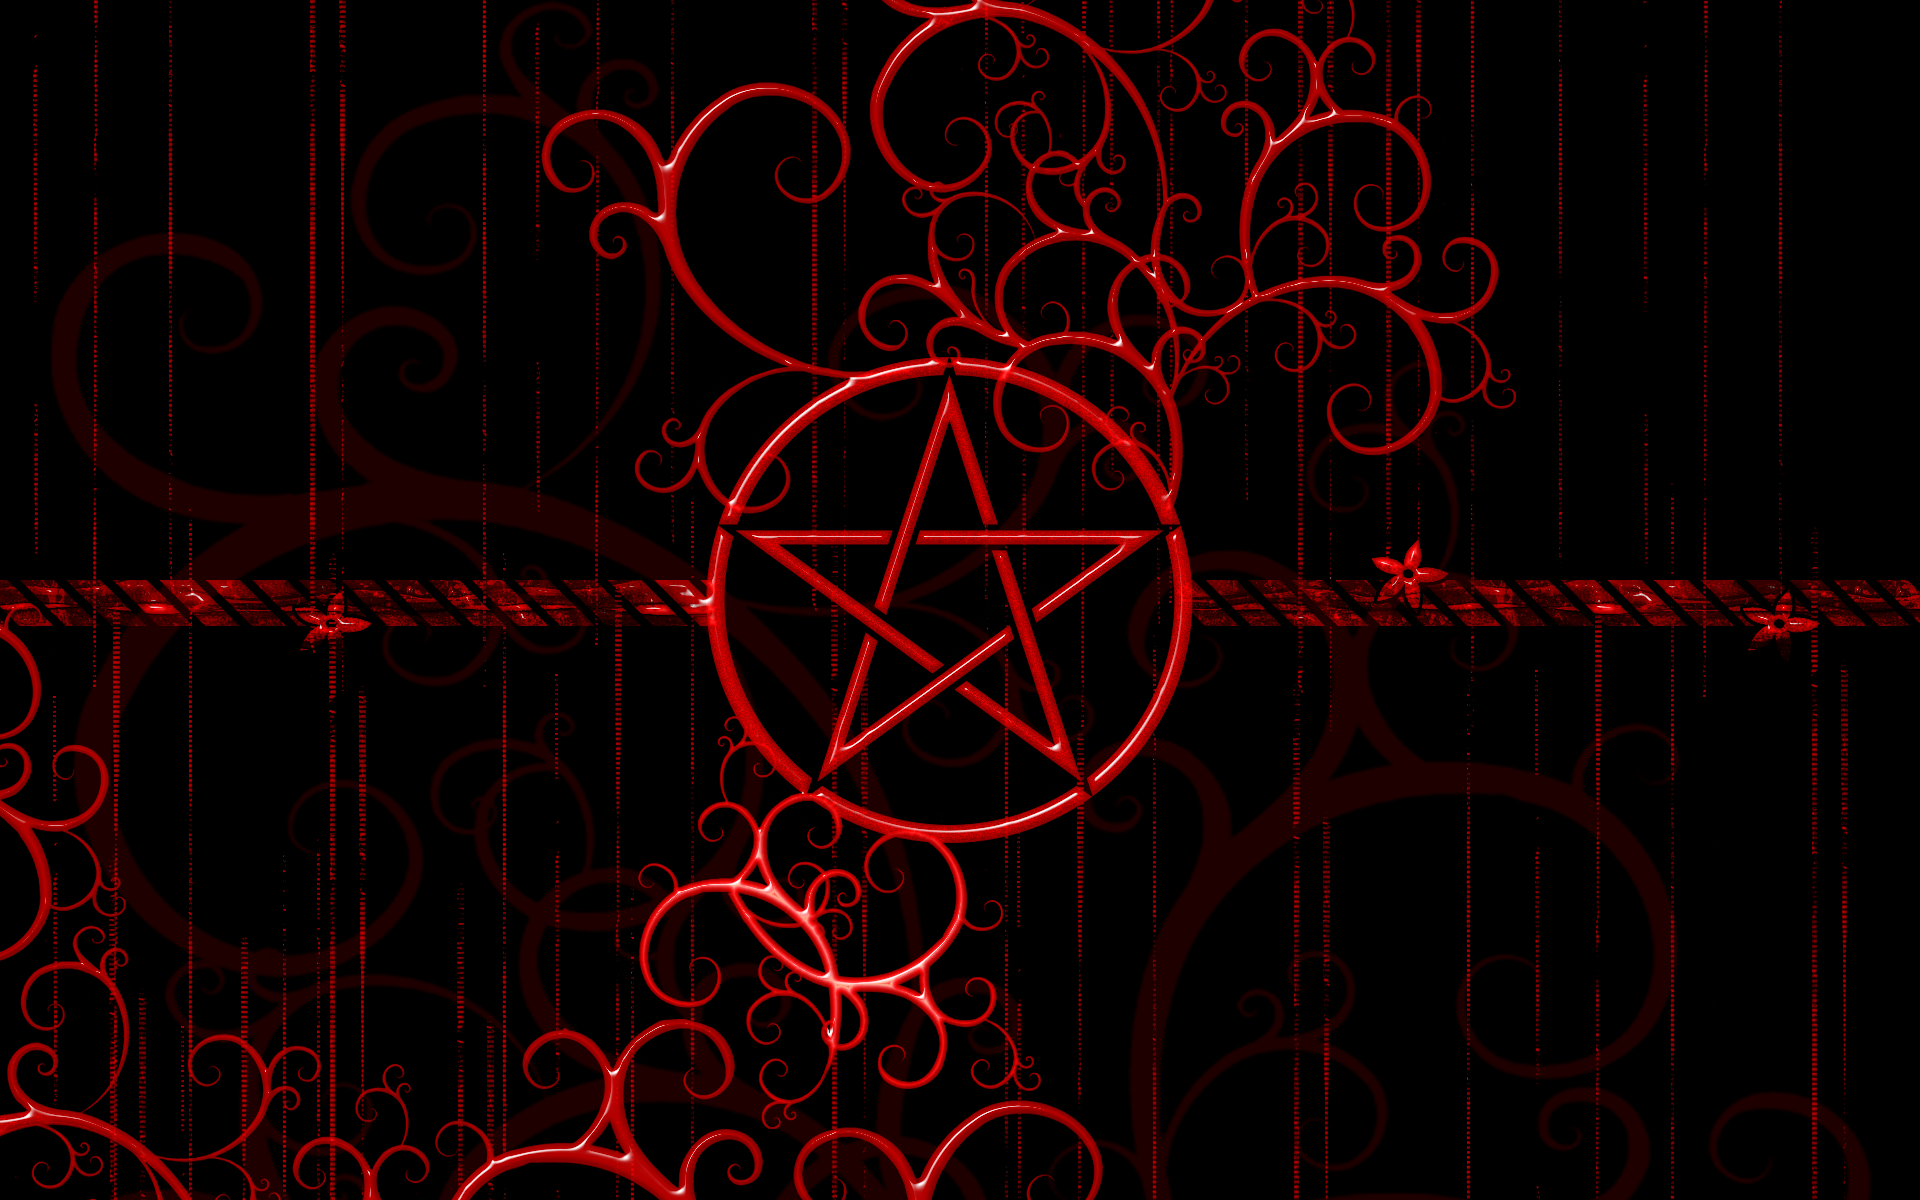 Free Download Satan Wallpaper Hd 1920x1200 For Your